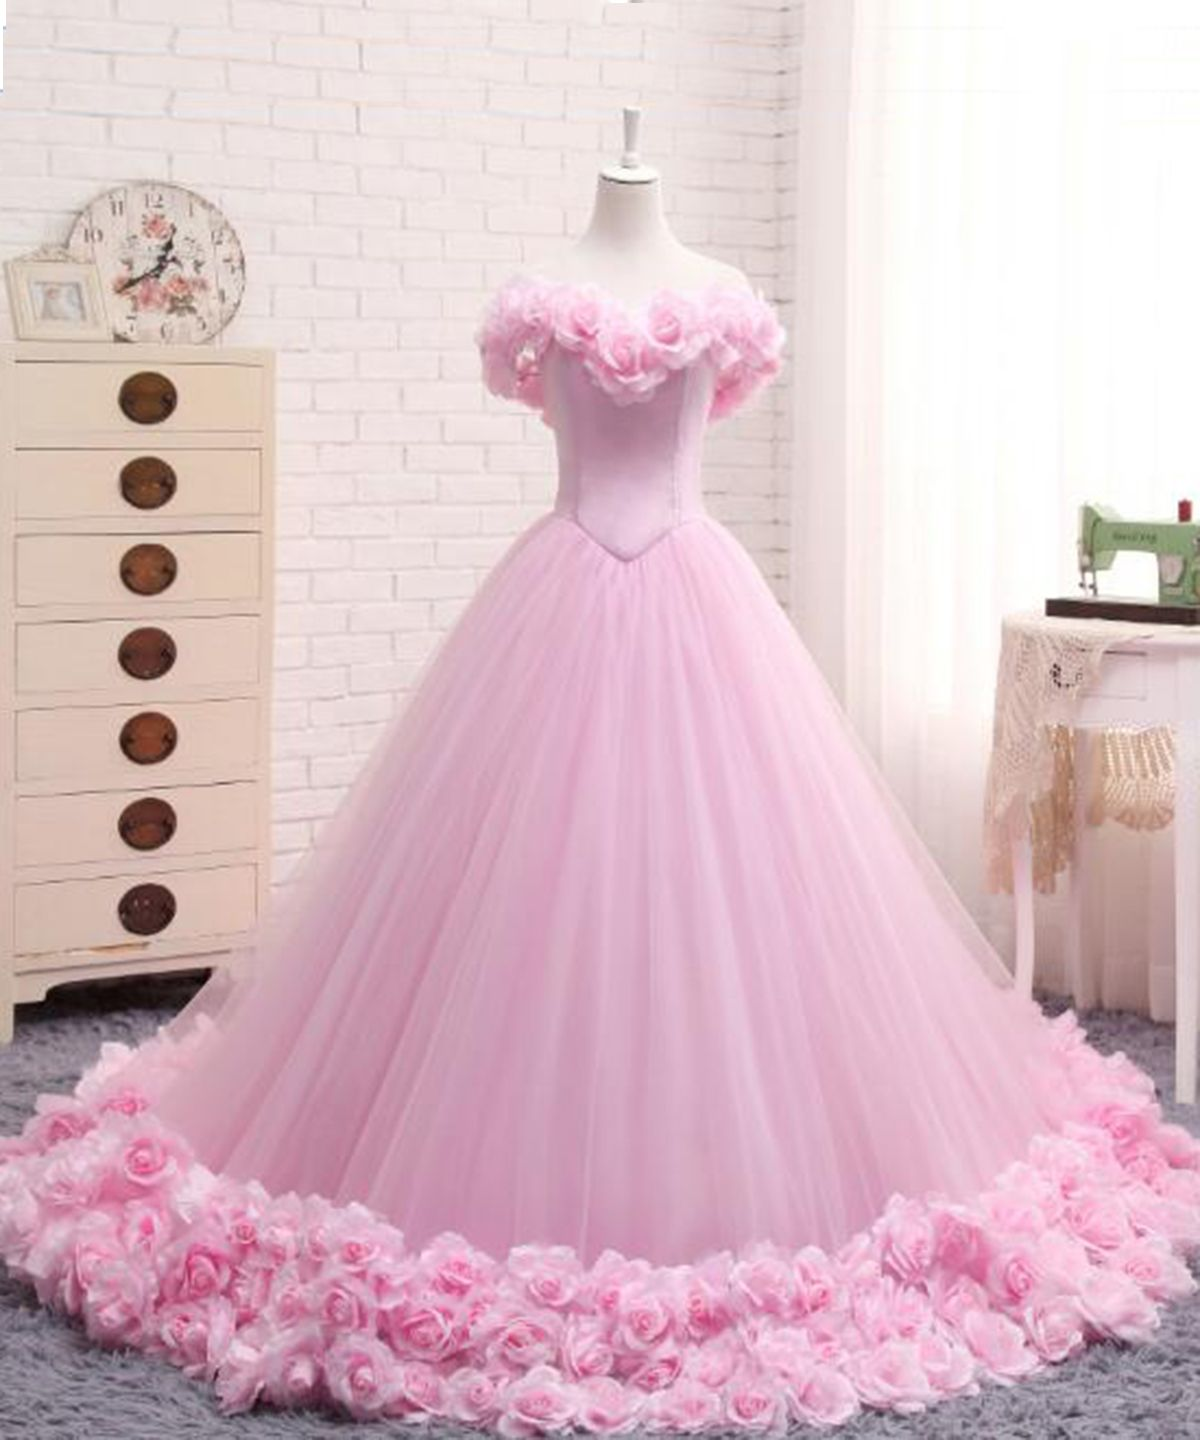 Elegant pink tulle prom gown wedding dress | Fashion | Pinterest ...